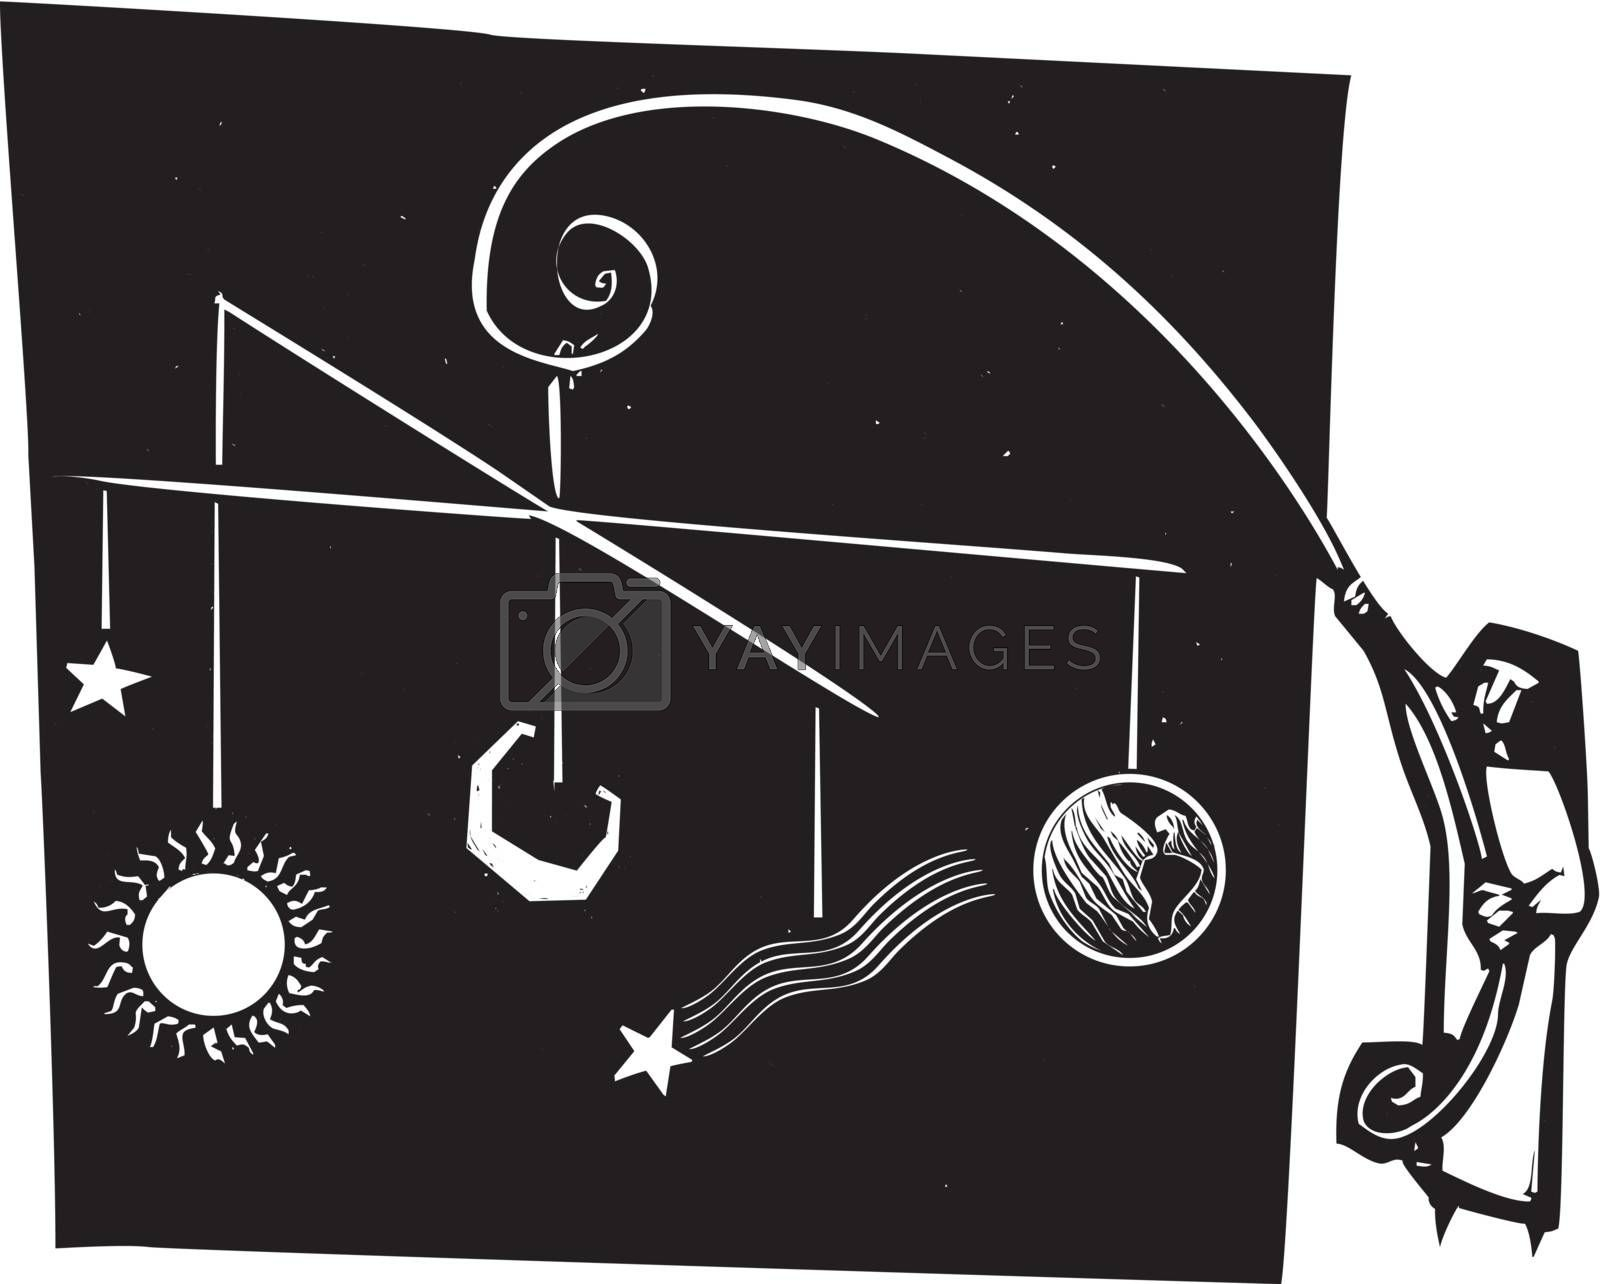 Woodcut style of a nun holding up a mobile of the solar system